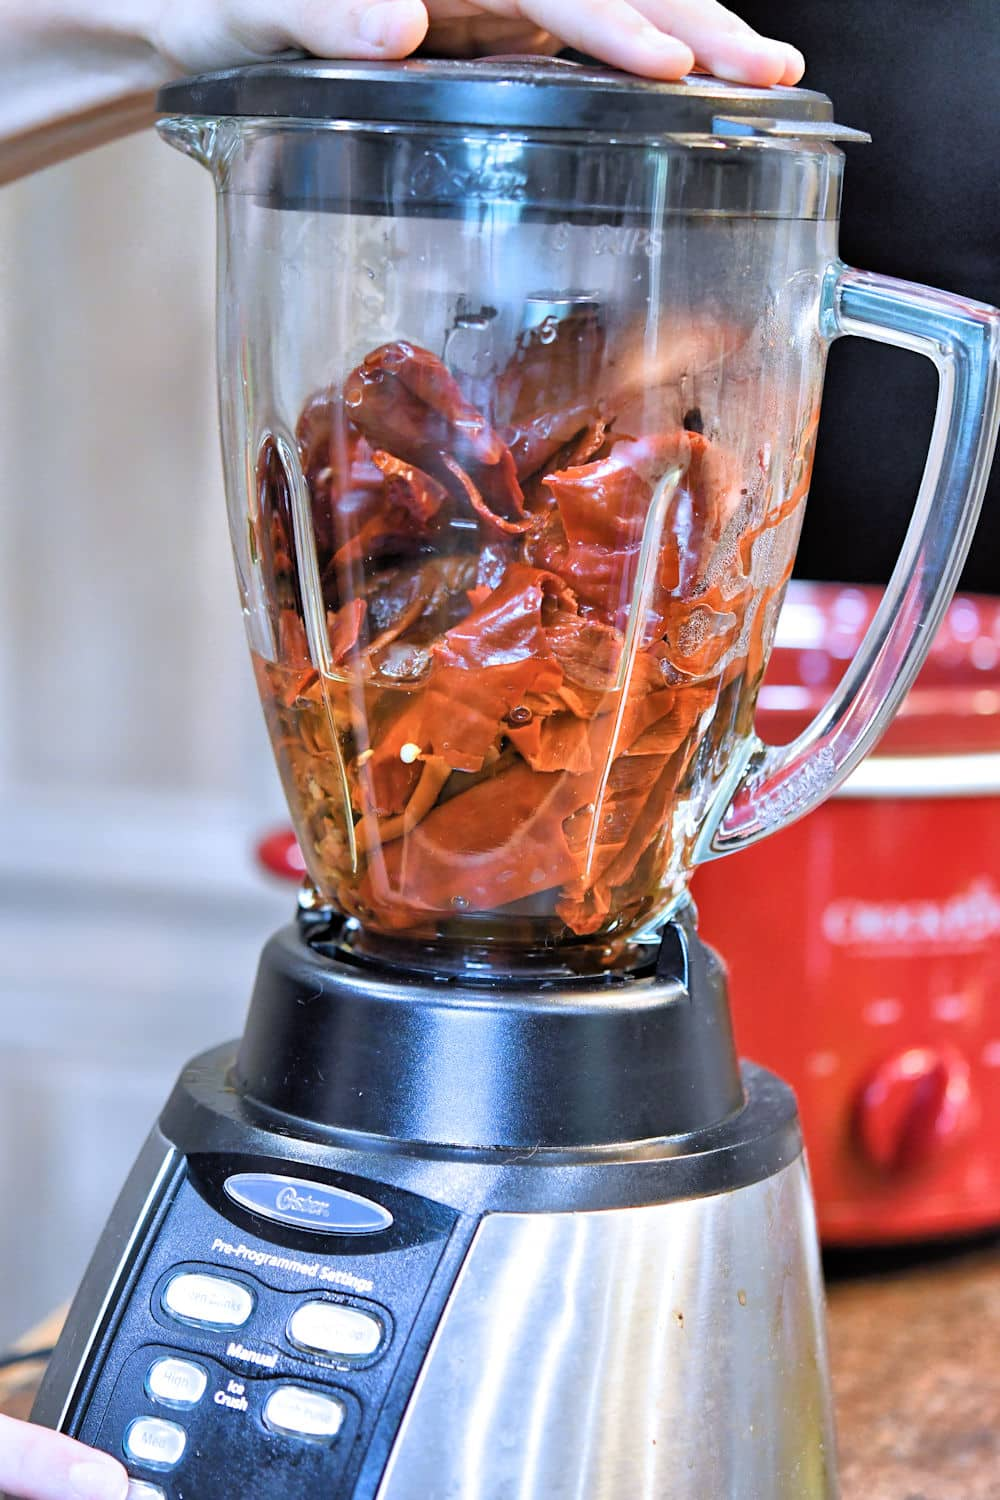 Once reconstituted, the chiles, onions and garlic are pulsed in an electric blender.